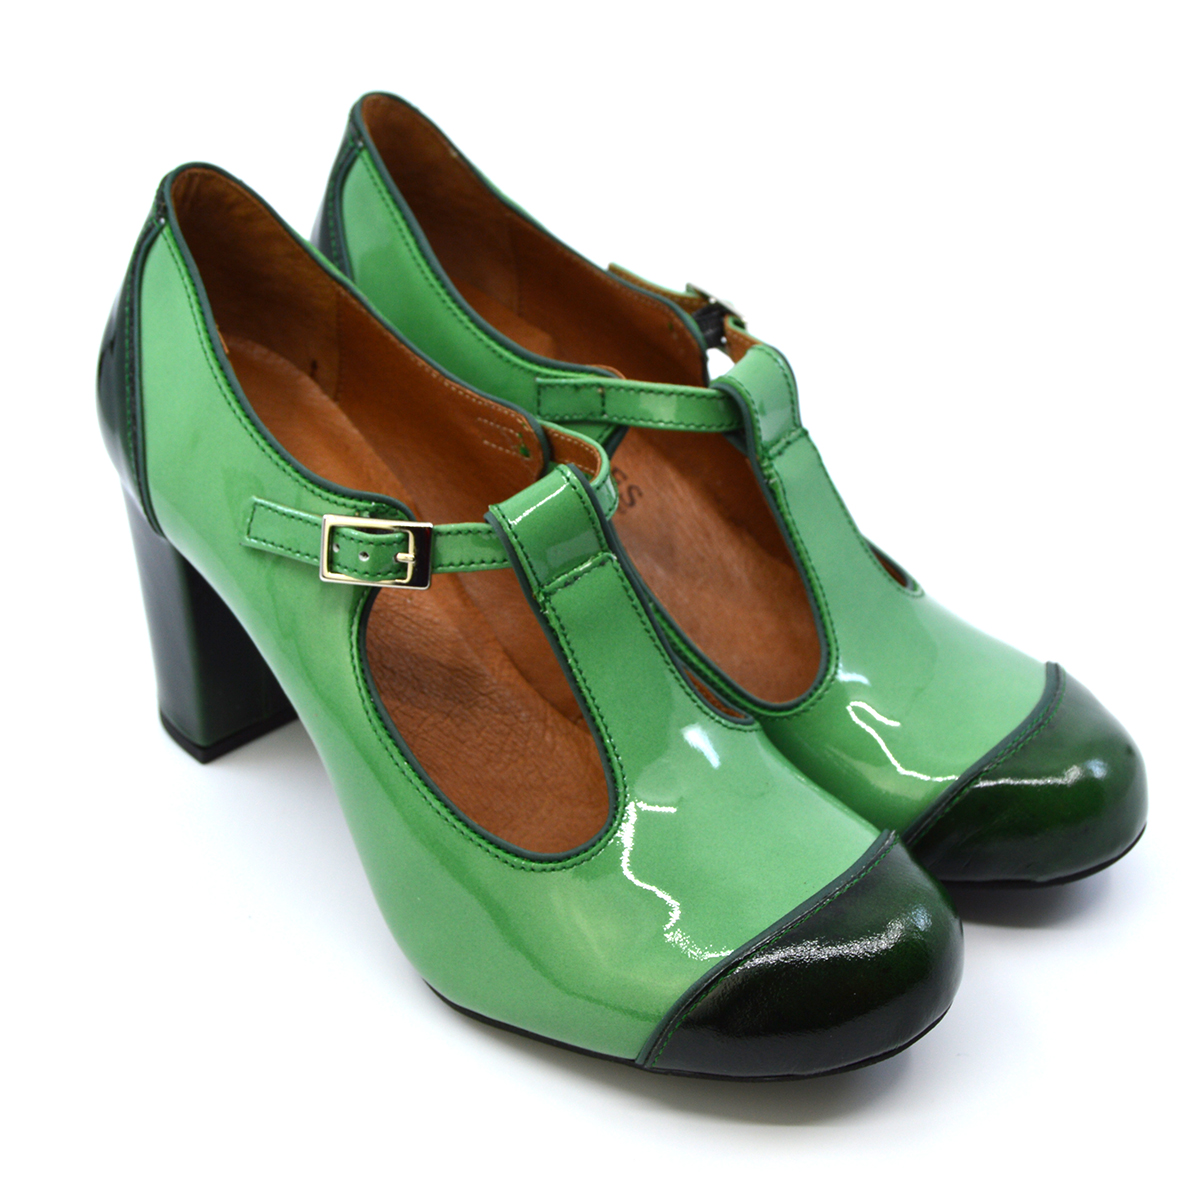 c51f47d213985 The Dusty In 2 Shades Of Green Patent – Ladies Retro T-Bar Shoe by Mod Shoes